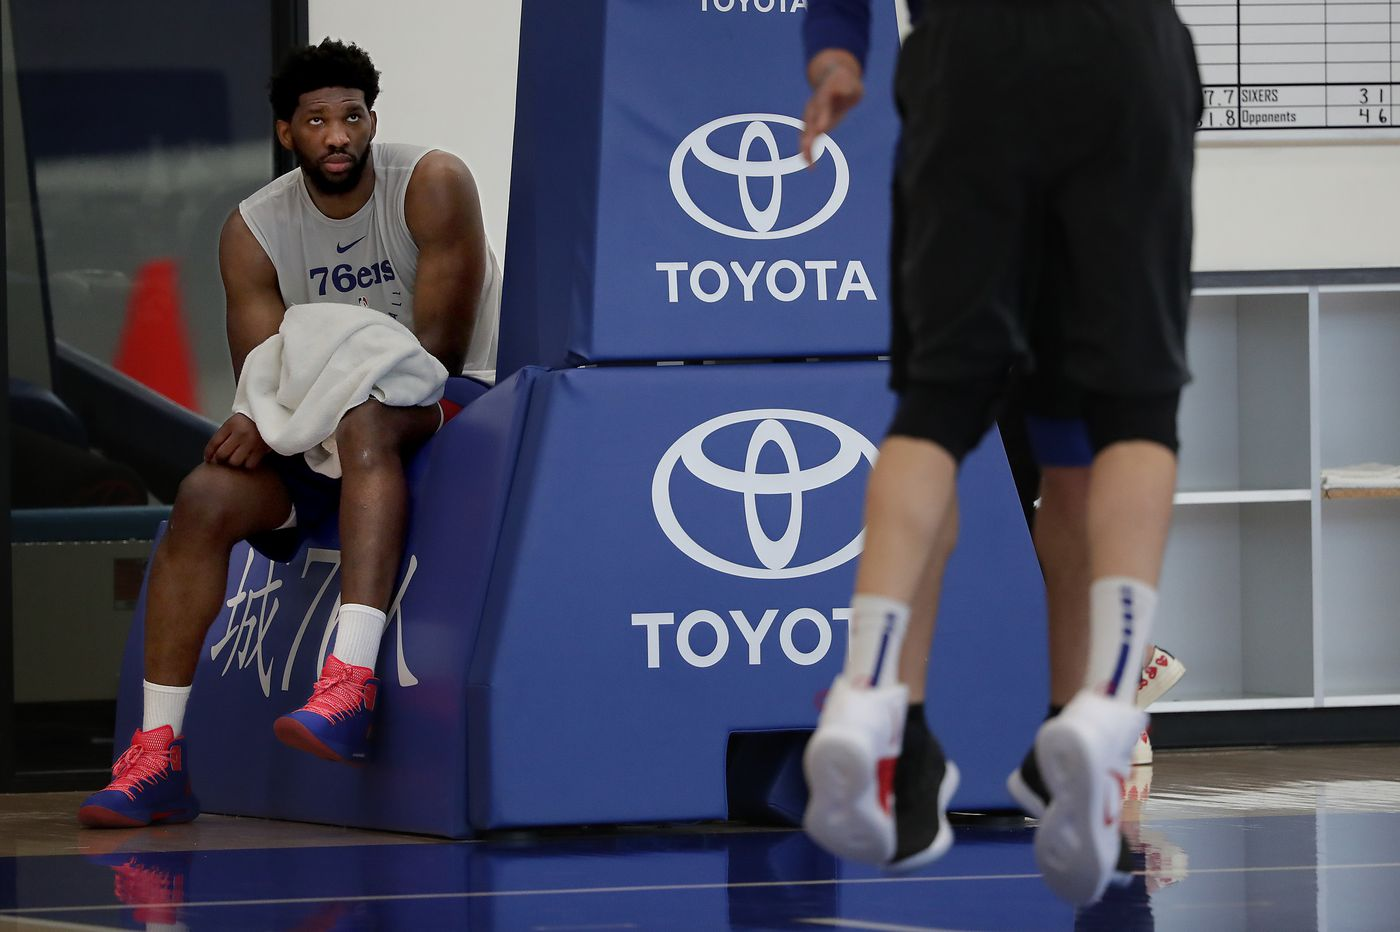 Sixers' Joel Embiid doesn't think he needs to be more careful after flagrant fouls